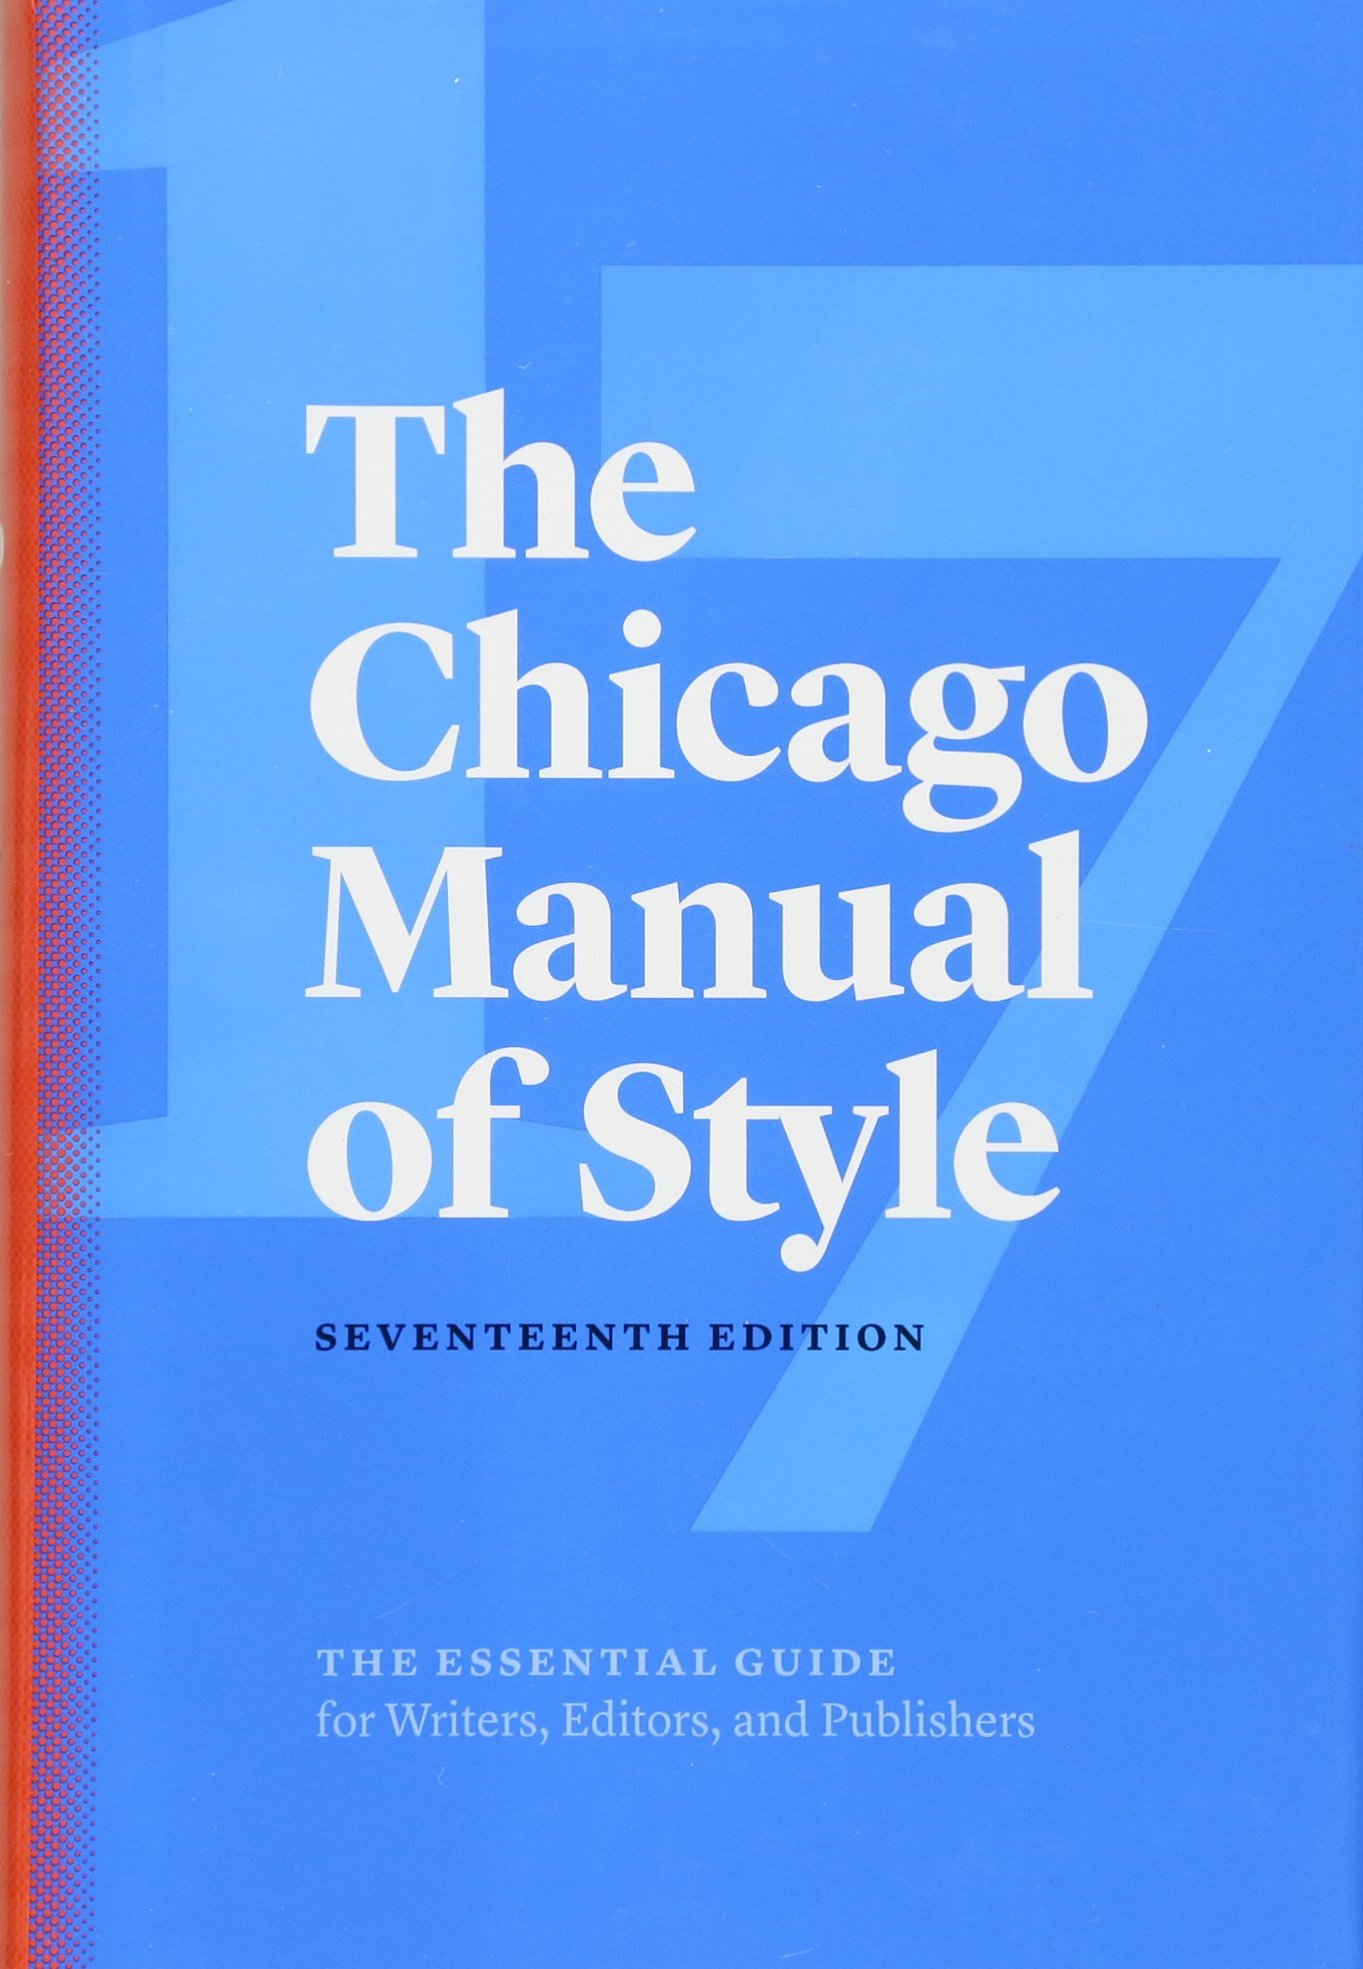 The Chicago Manual of Style, 17th Edition by University of Chicago Press